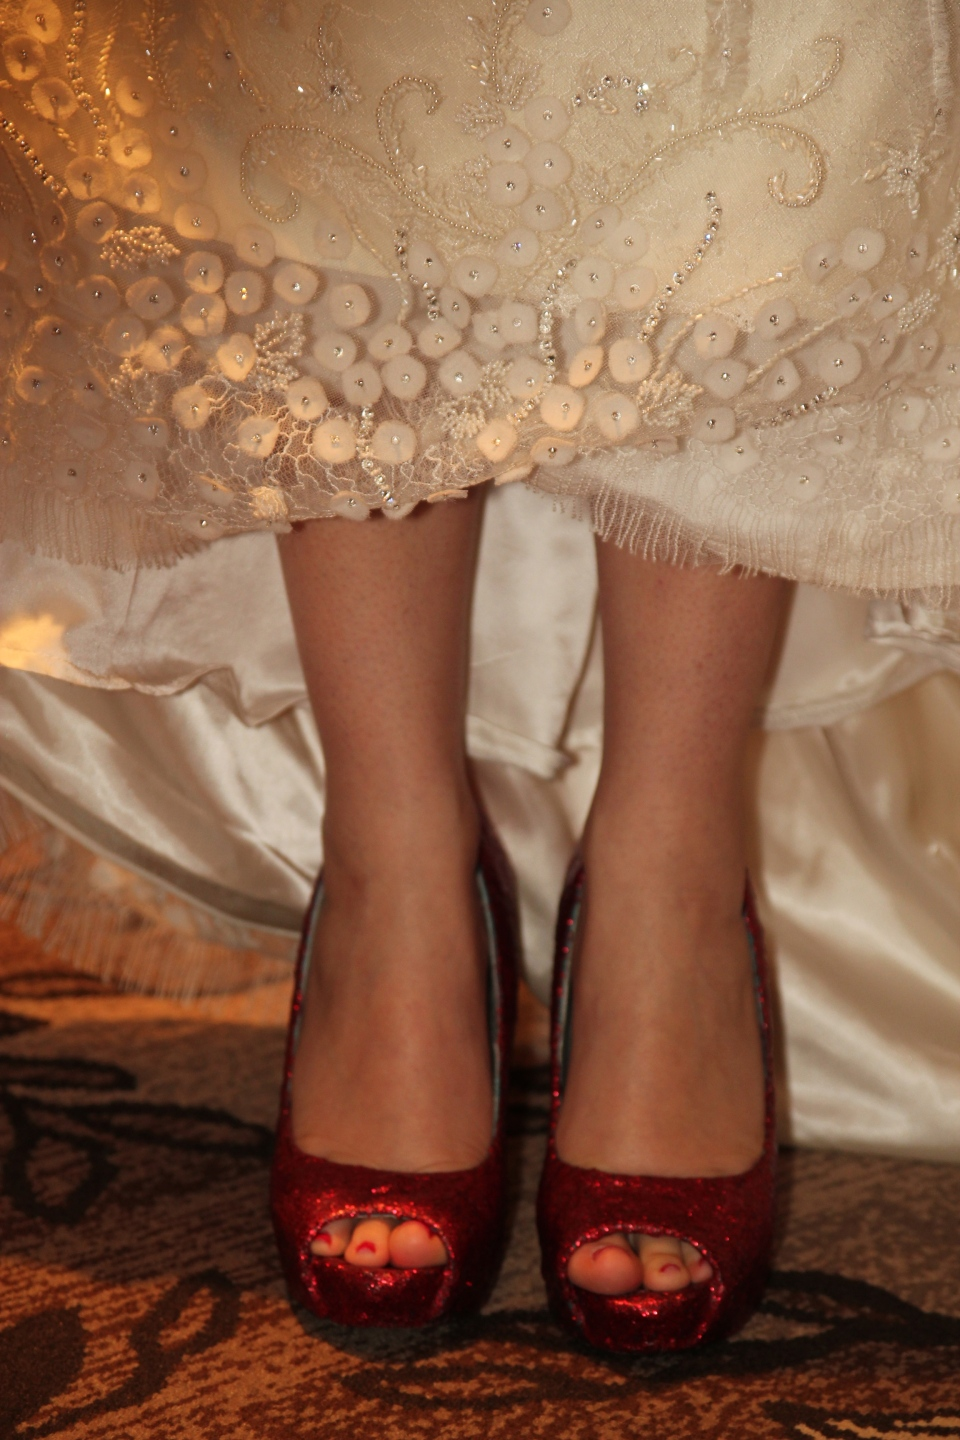 Of course we had Ruby Slippers for Dorothy. And look at the gorgeous detail on the dress!